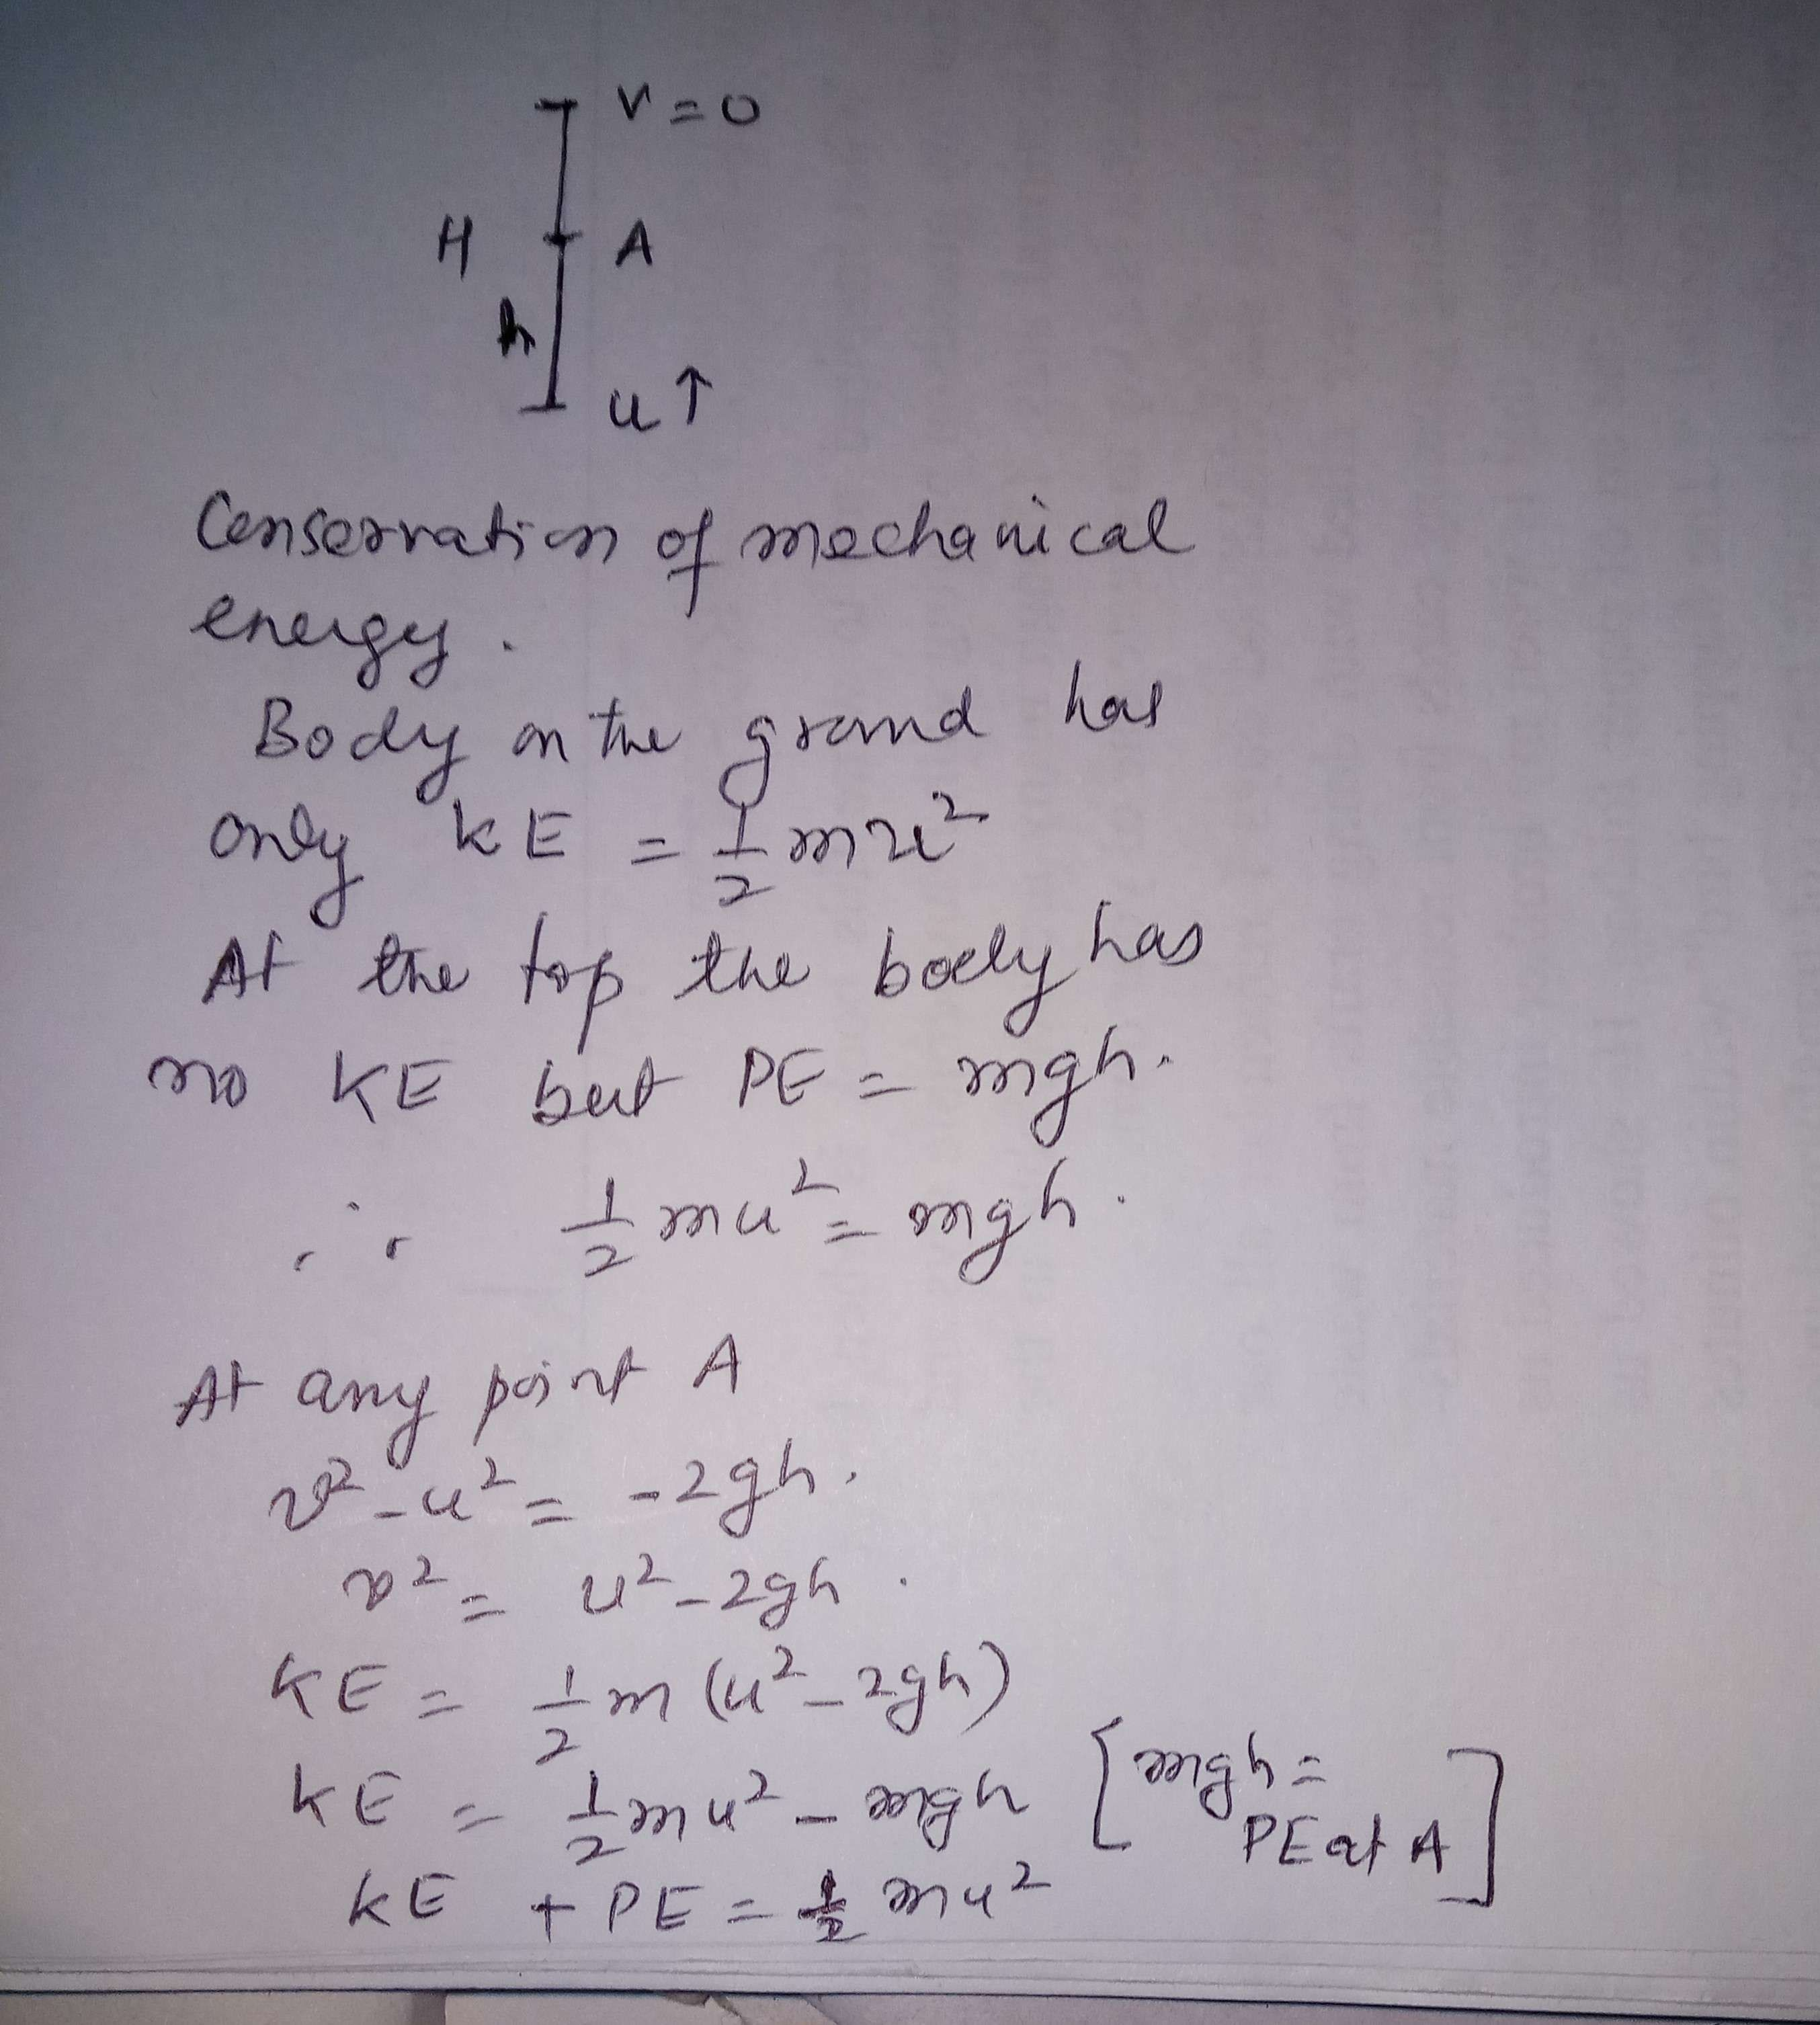 what is the law of conservation of mechanical energy